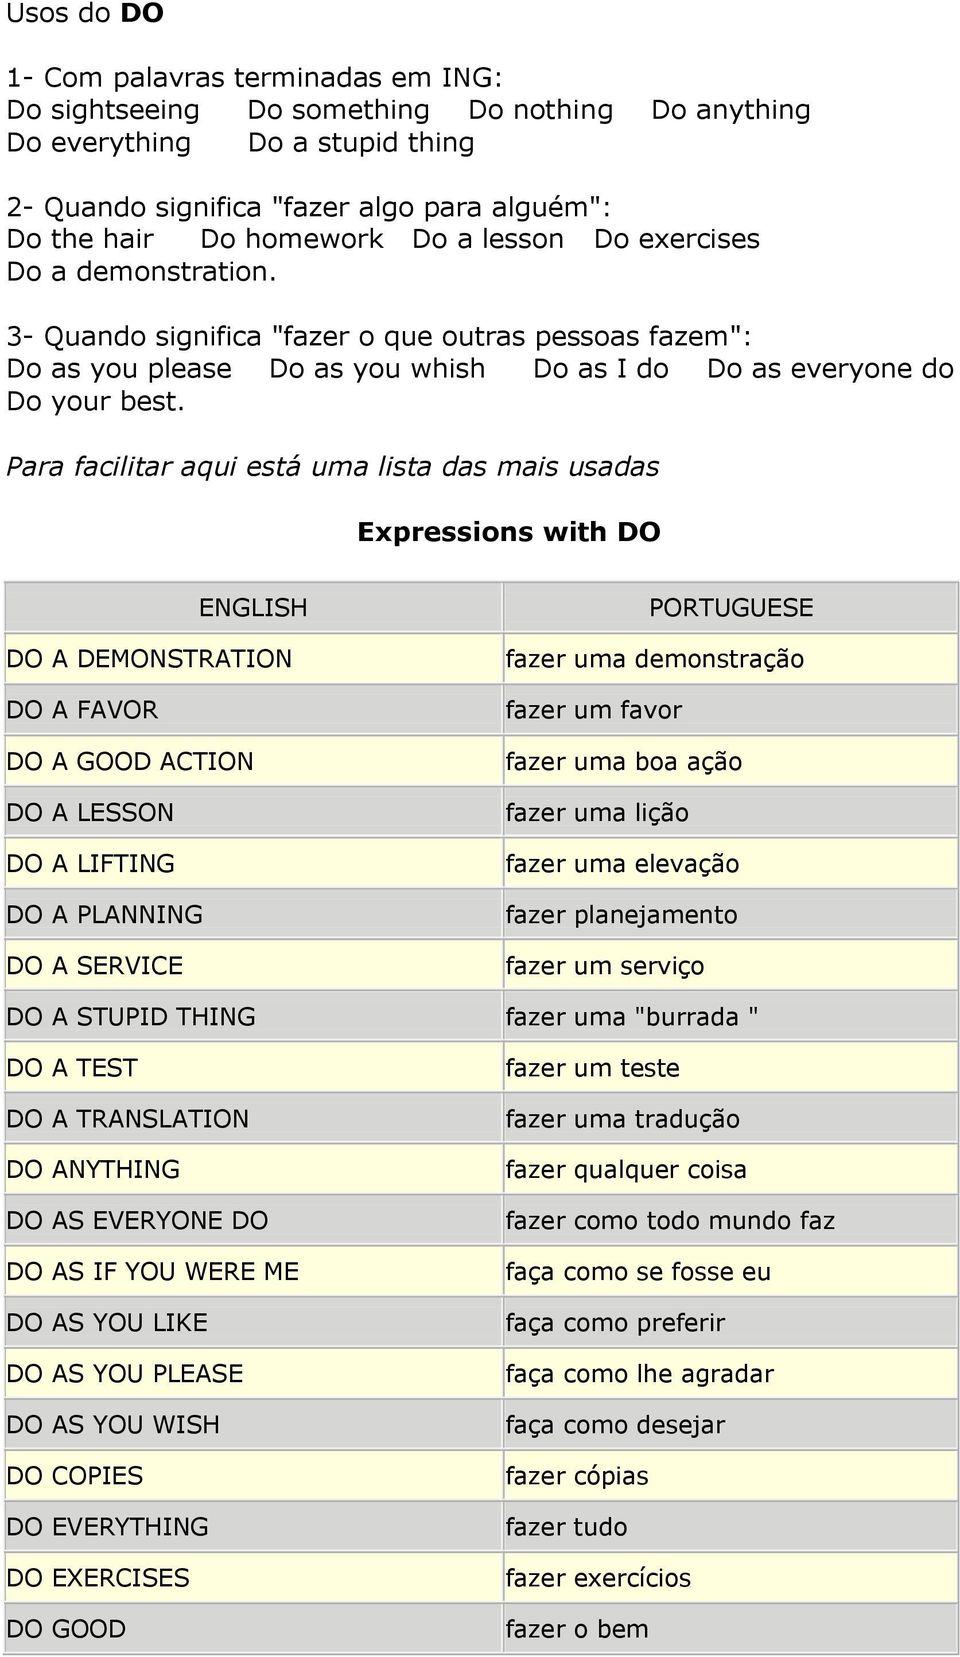 Para facilitar aqui está uma lista das mais usadas Expressions with DO ENGLISH DO A DEMONSTRATION DO A FAVOR DO A GOOD ACTION DO A LESSON DO A LIFTING DO A PLANNING DO A SERVICE PORTUGUESE fazer uma